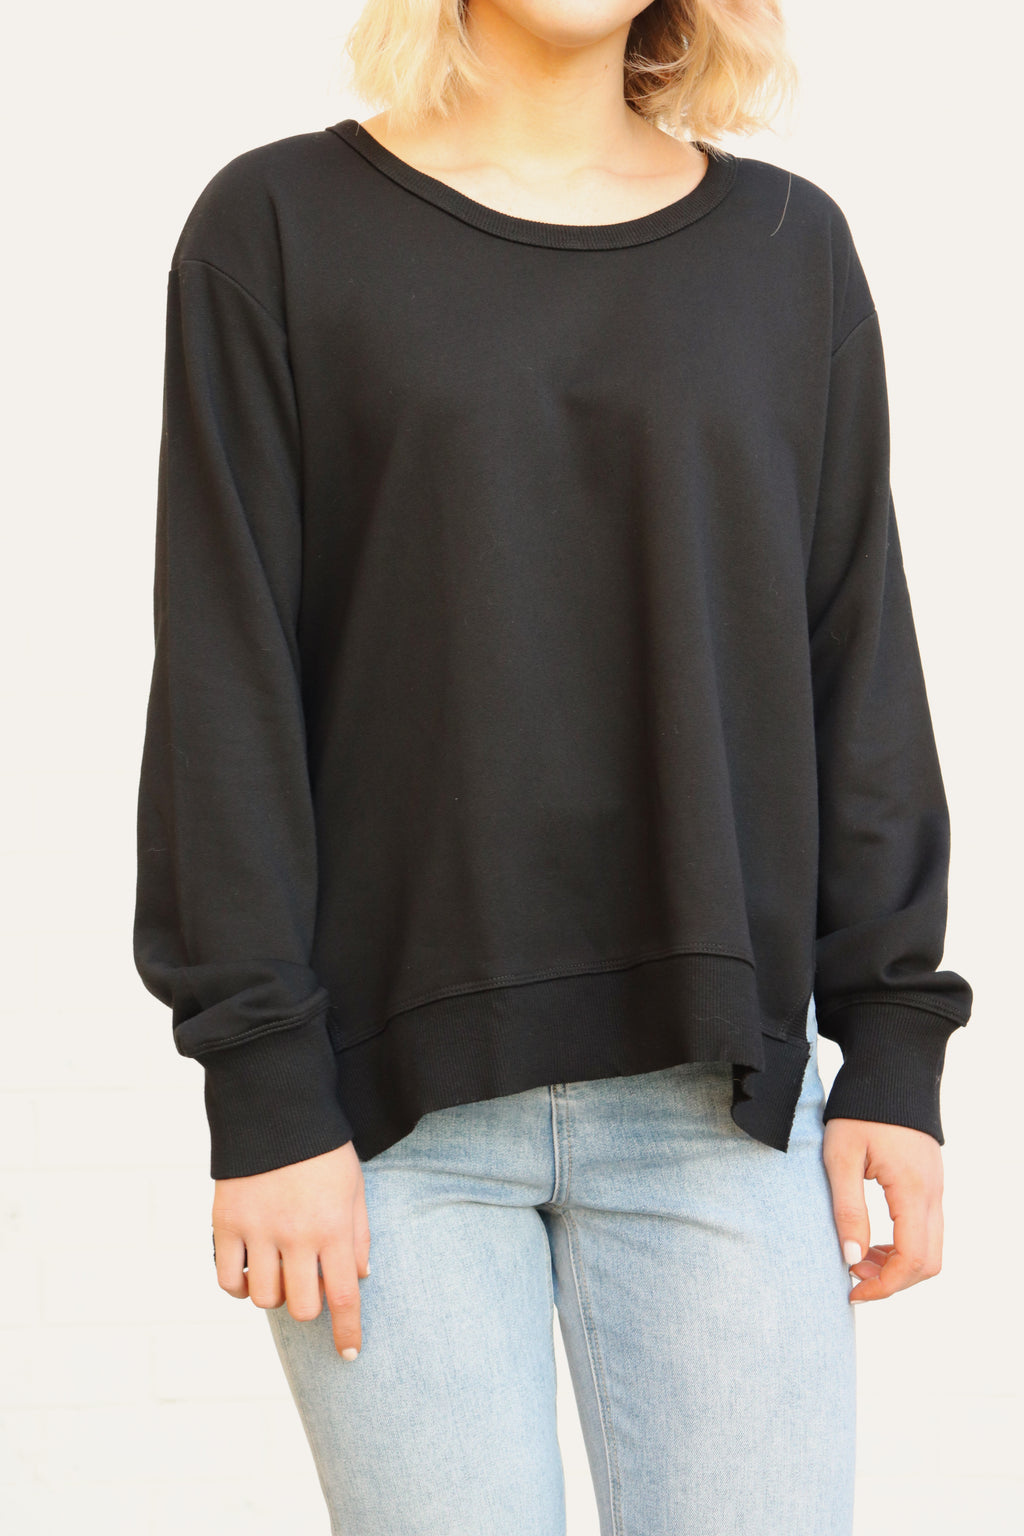 Ulverstone Sweater - Black